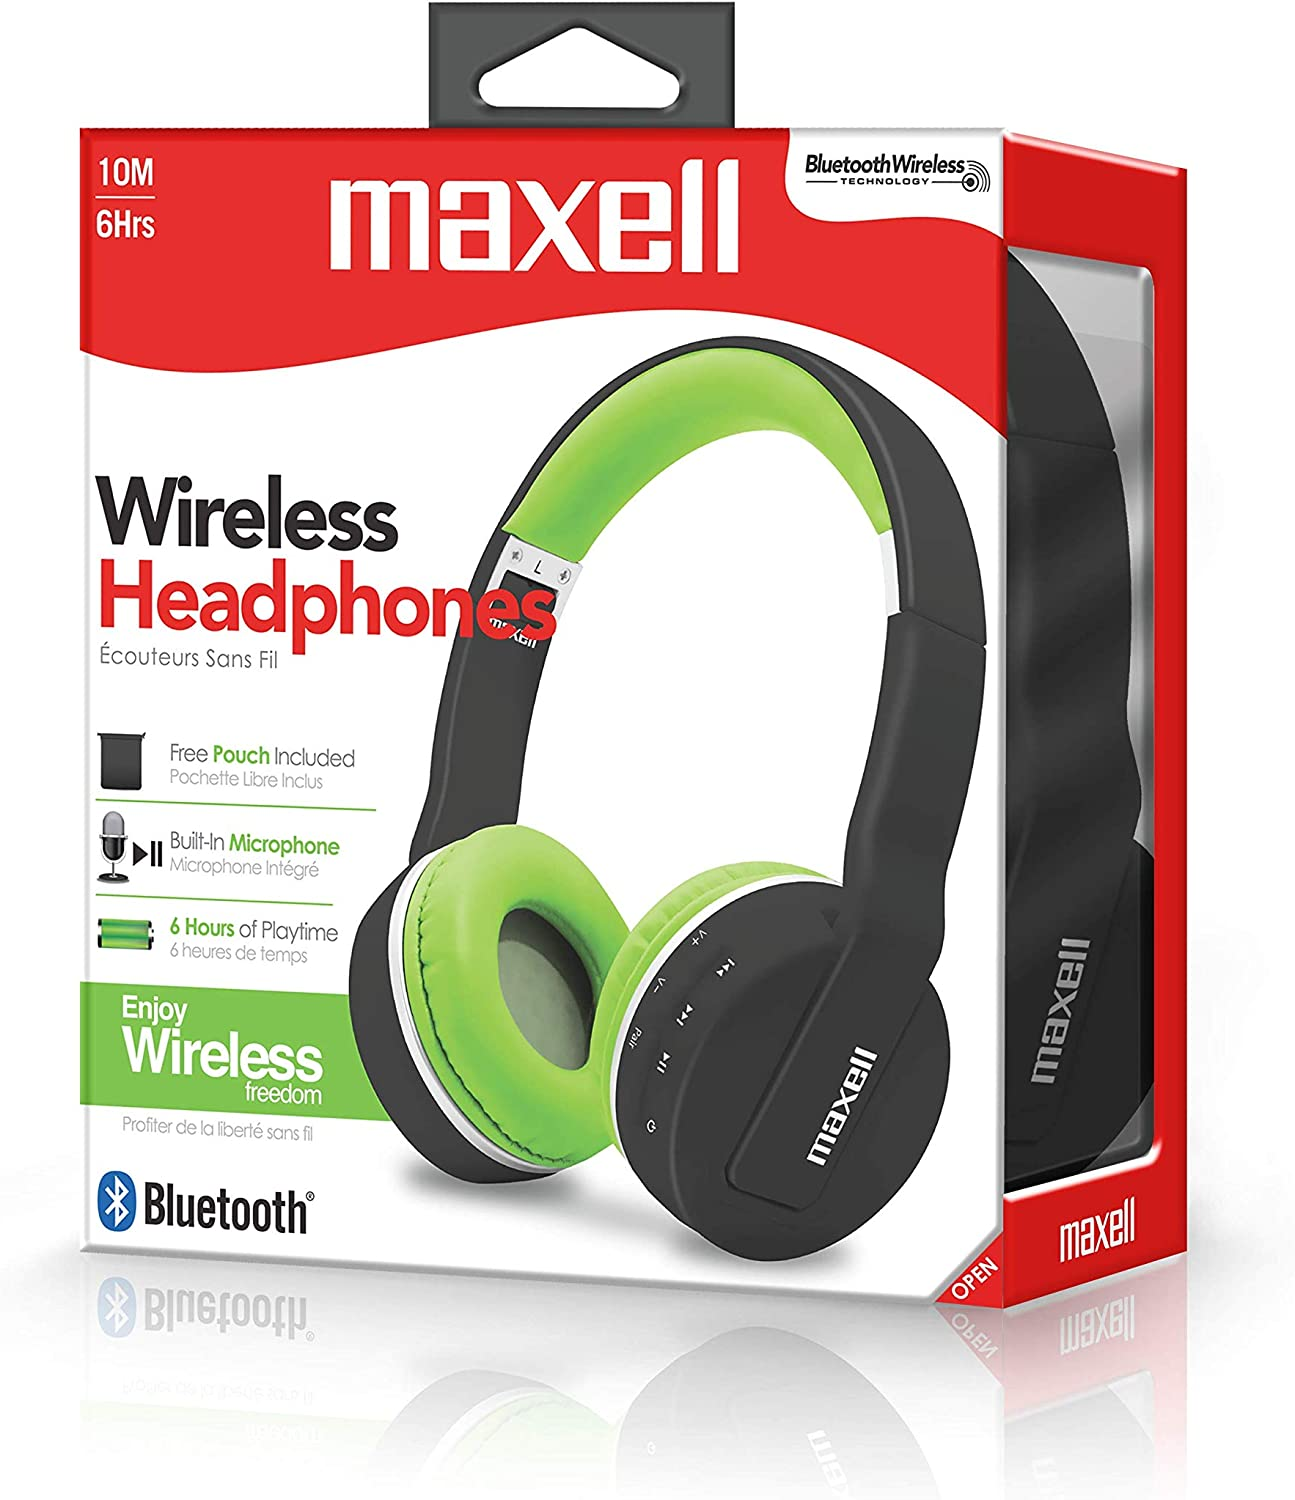 Maxell Foldable Wireless Bluetooth Soft Cushioned Headphones with Micro USB Charging Port Mic 6 Hour Charge Life – Black Green Headphone 199752